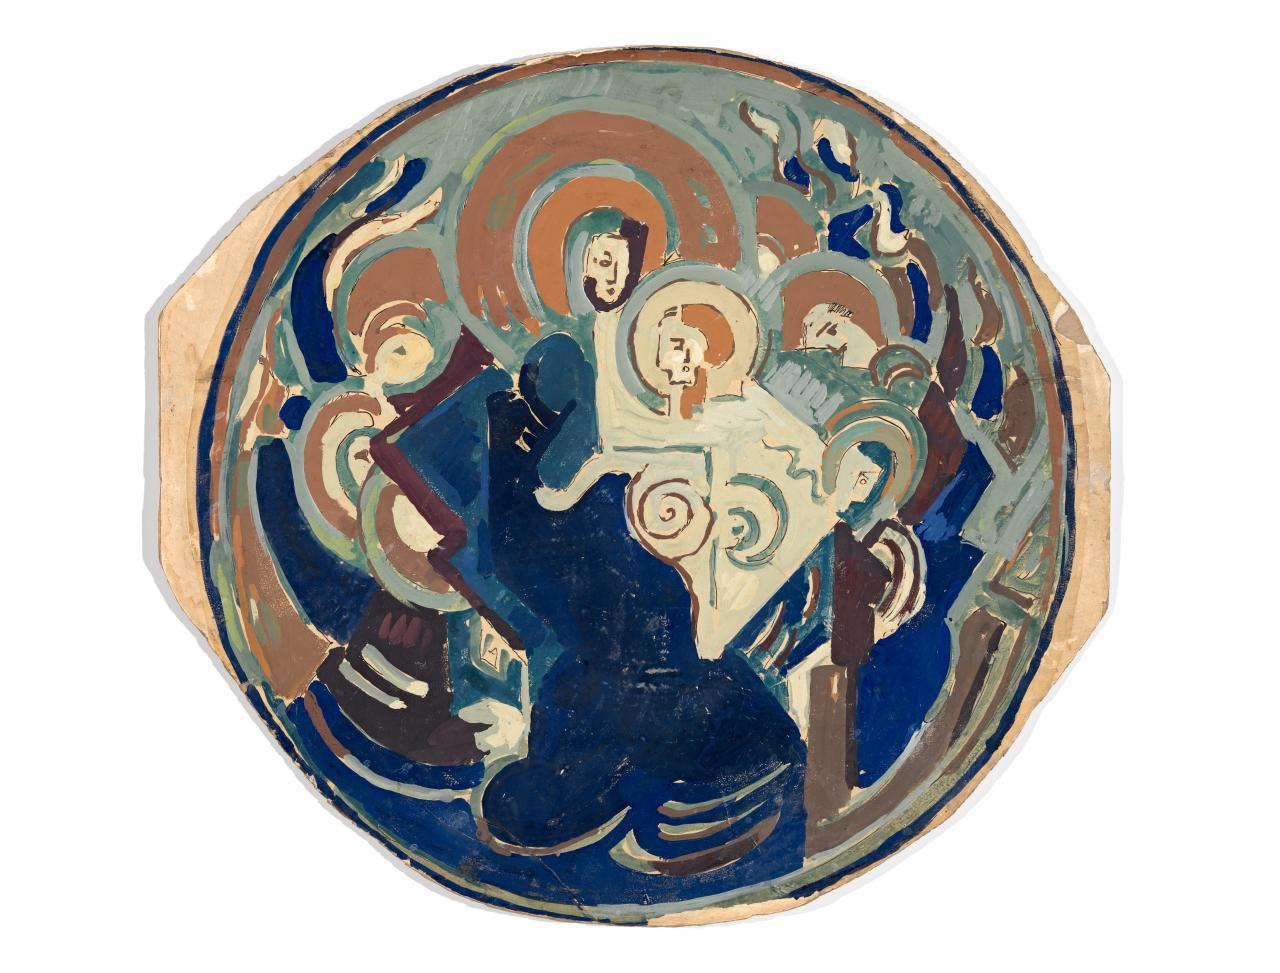 Virgin and child surrounded by angels, design for a platter